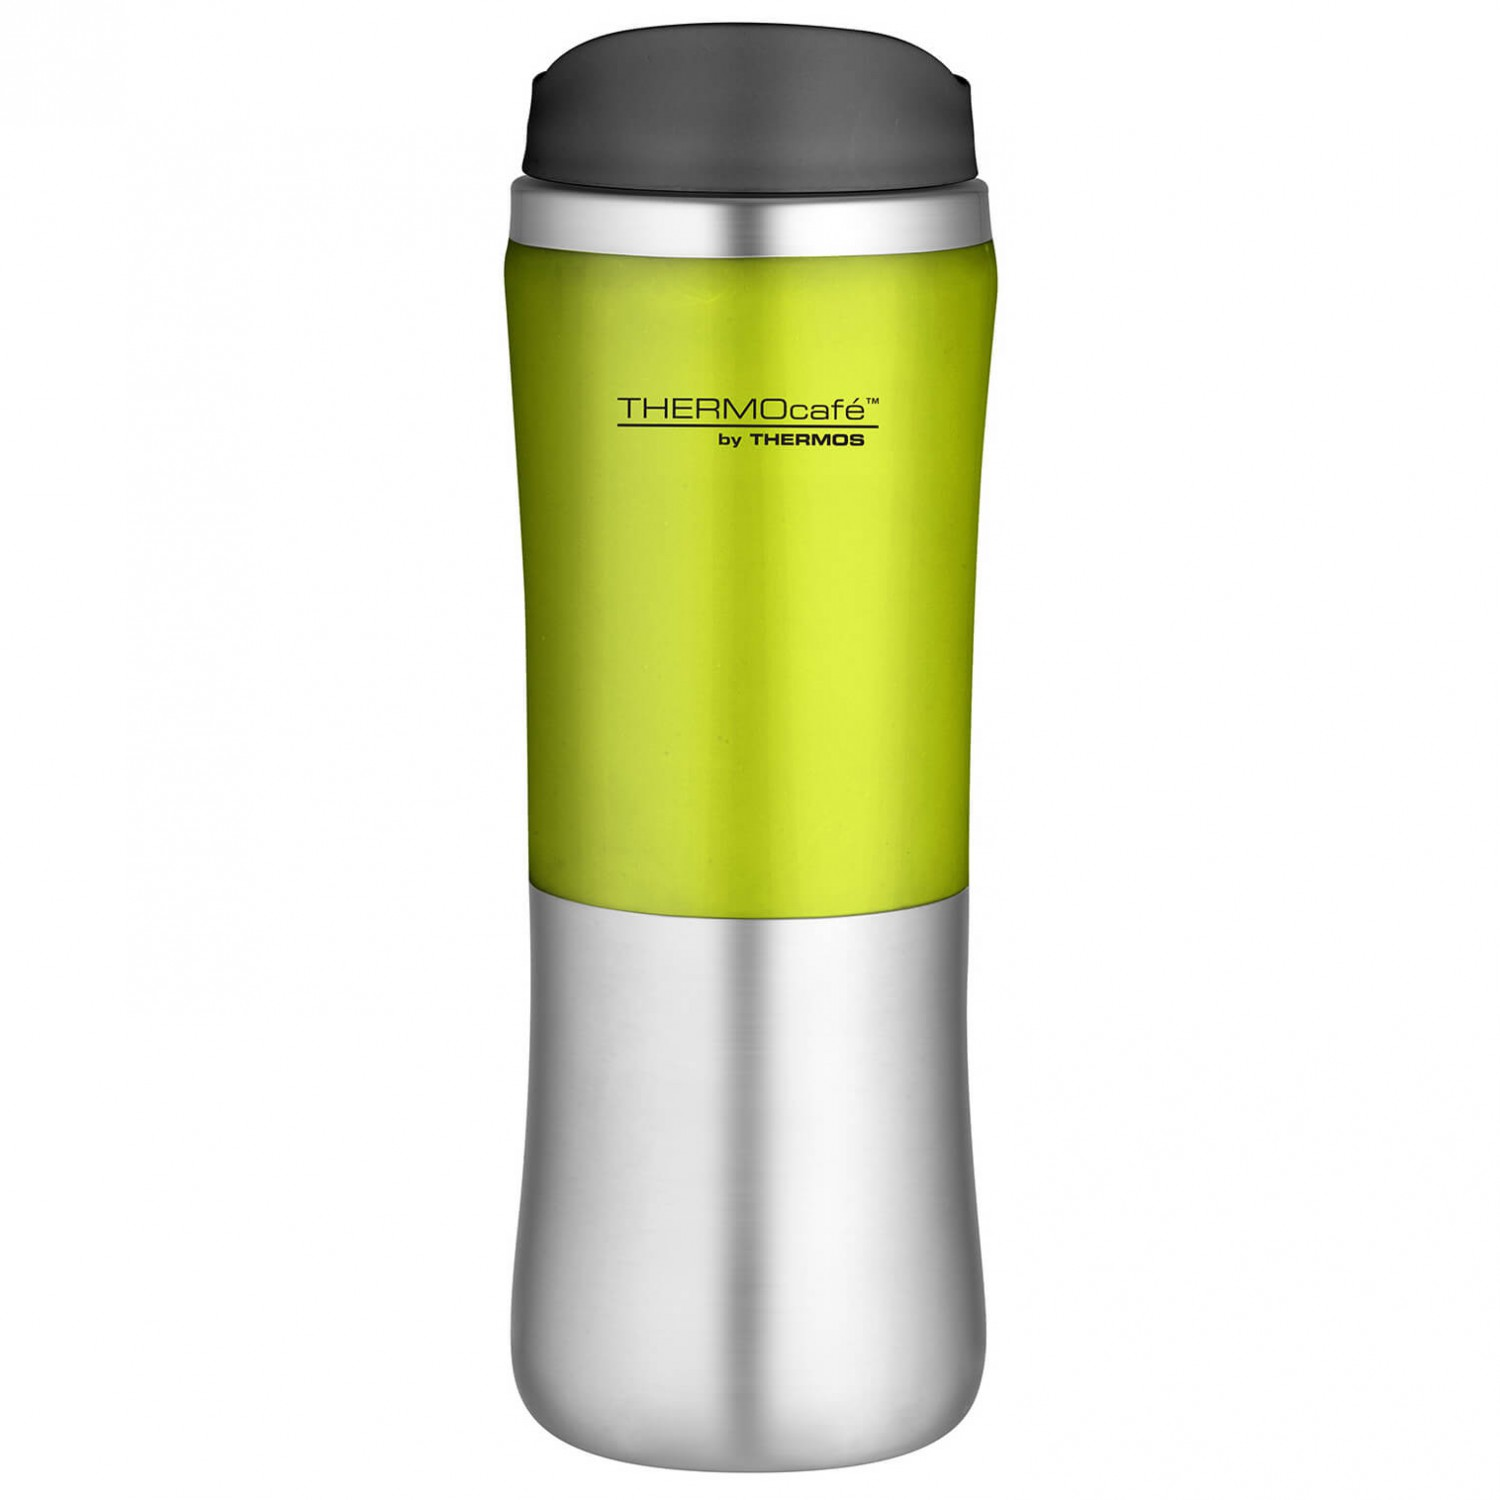 Thermos thermocafe brilliant mug insulated mug buy for Thermos caffe